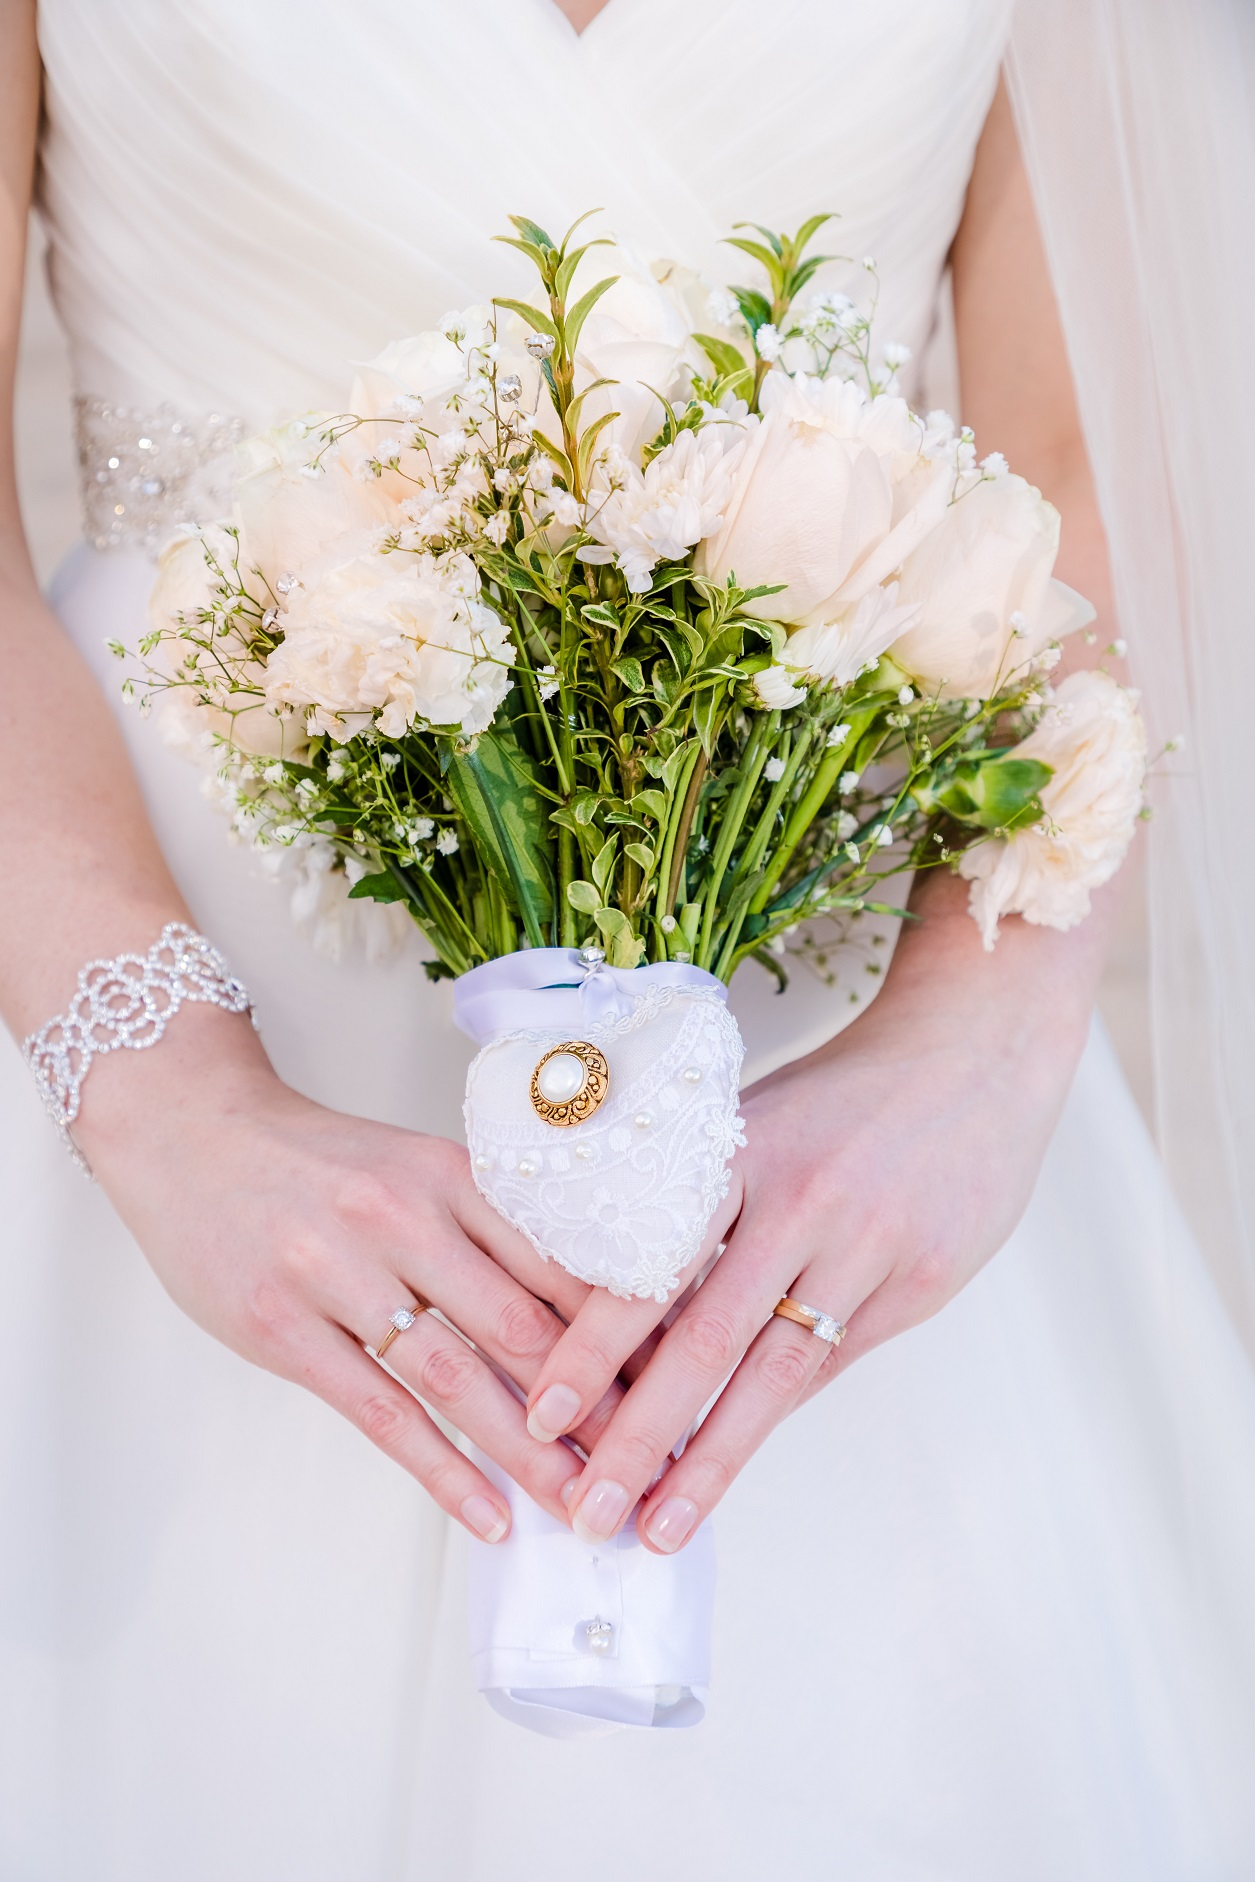 Grandmothers wedding ring in the bouquet...